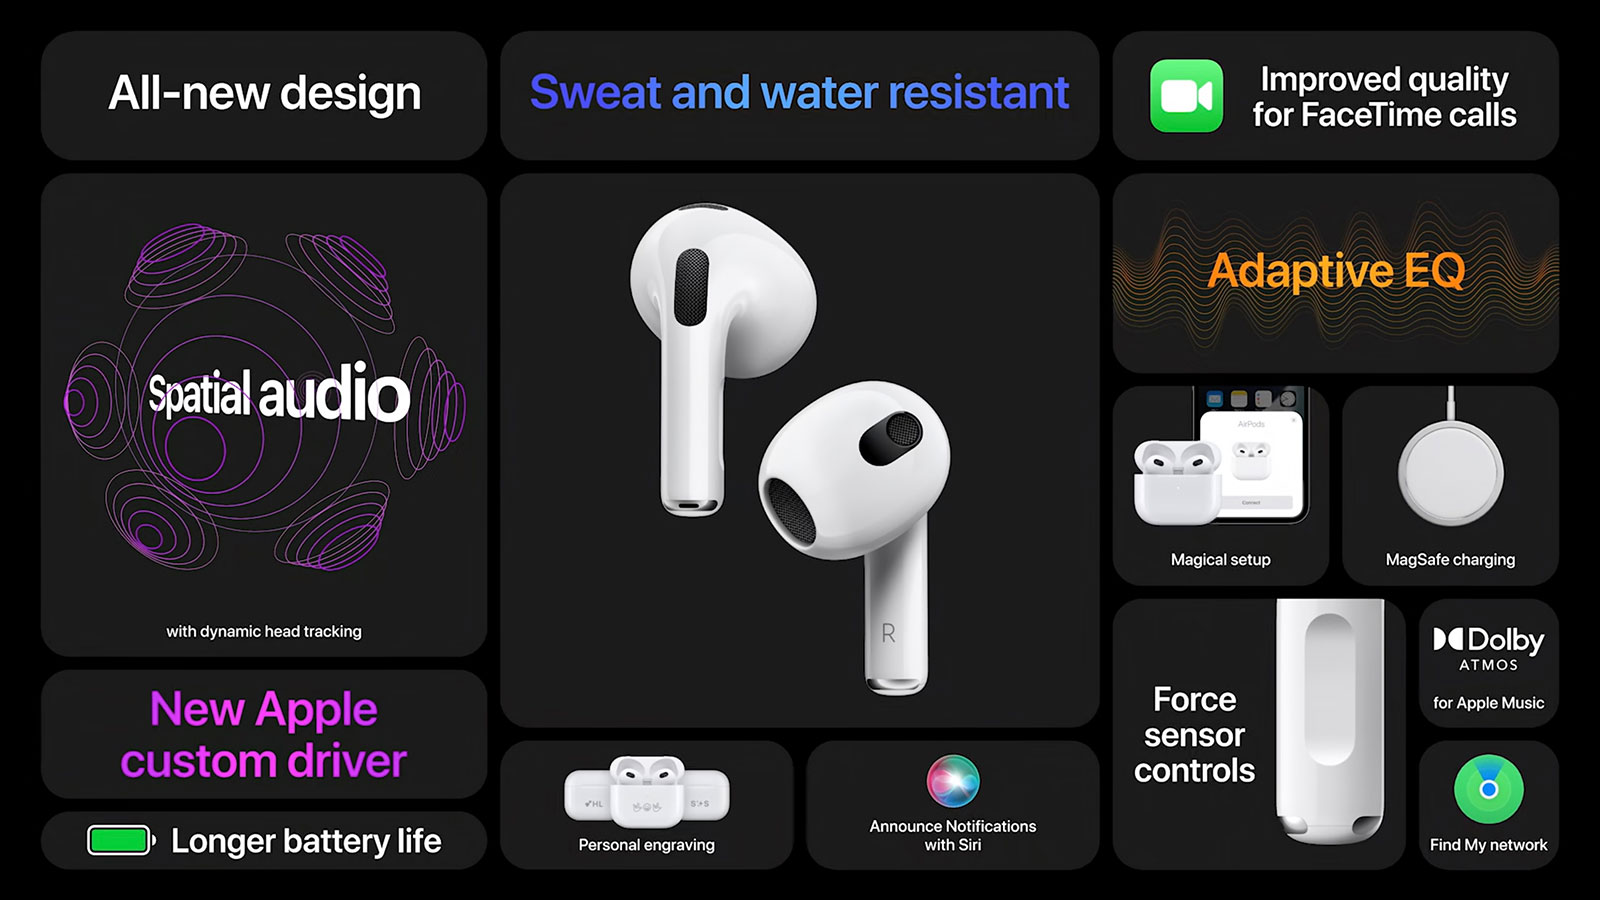 Apple announces third-generation AirPods with new design, spatial audio